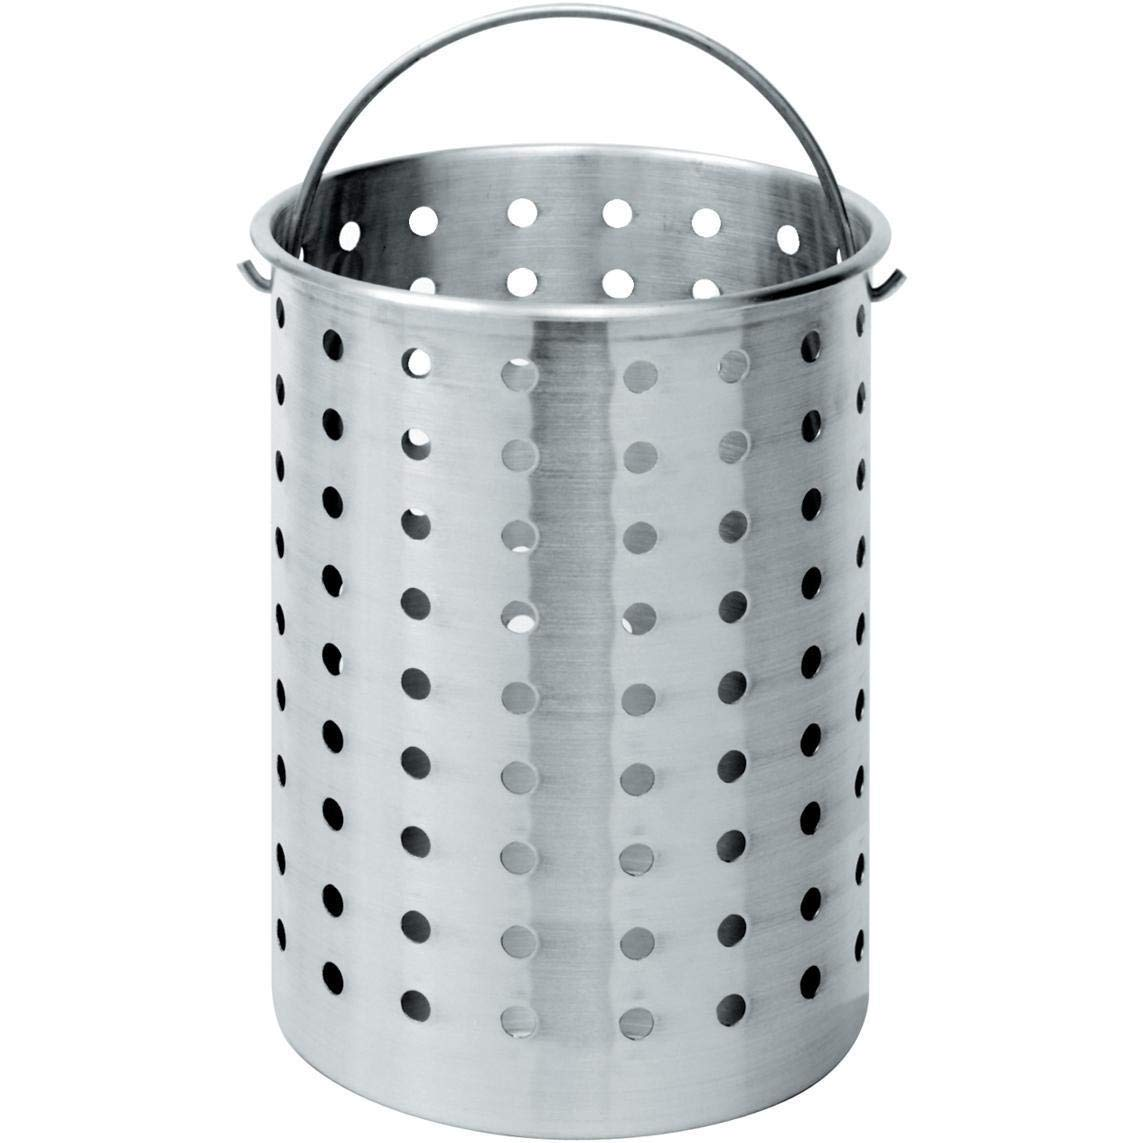 Bayou Classic B160, 62-Qt. Stainless Perforated Basket by Bayou Classic